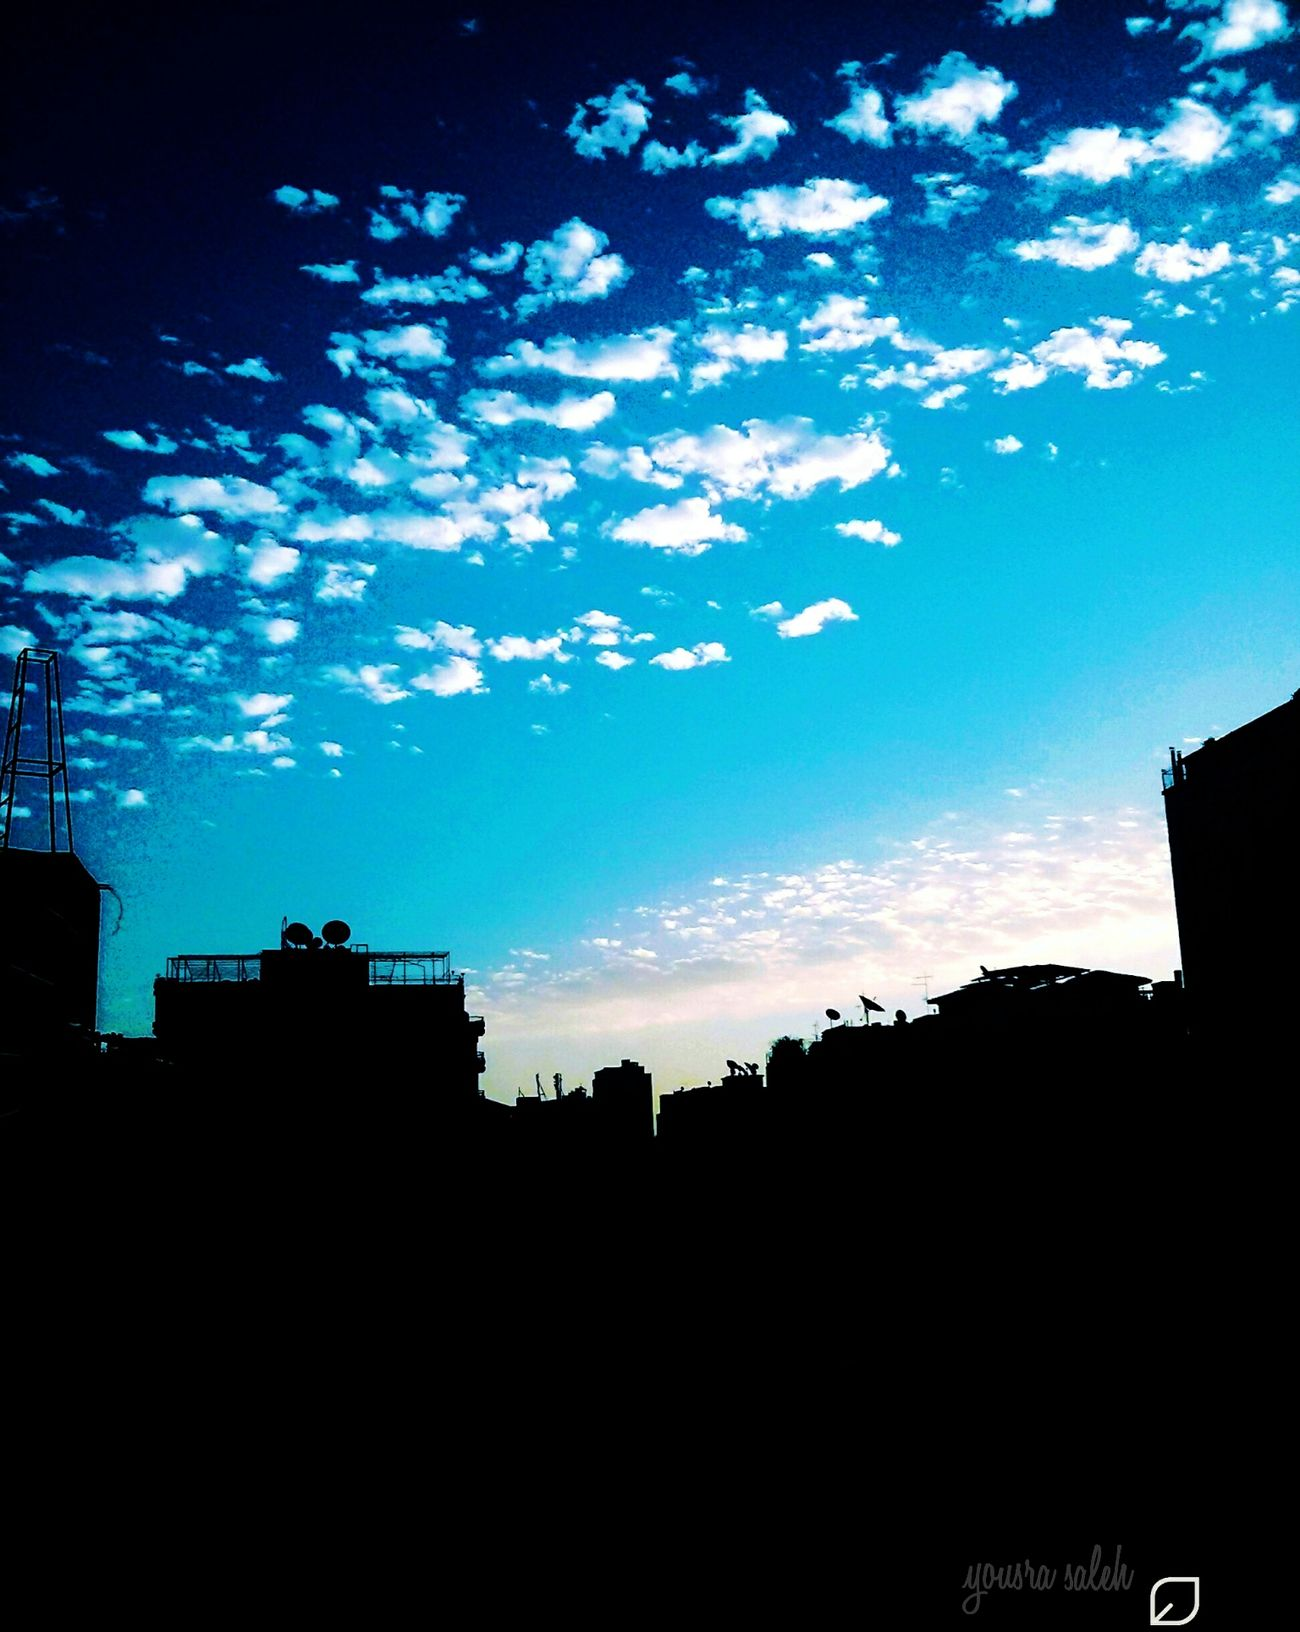 Sky View Sky View From The Top Floor Sky Clouds And Sky Clouds White Clouds Blue Sky Blue Sky White Clouds White Clouds And Blue Sky Cloudscape Nature Nature_collection Nature Photography Naturelovers Natural Beauty Landscape Landscape_Collection Shadows & Lights Morning Sky Black And Blue Satalite Dish Satalite Dishes Smartphonephotography Taking Photos Love To Take Photos ❤